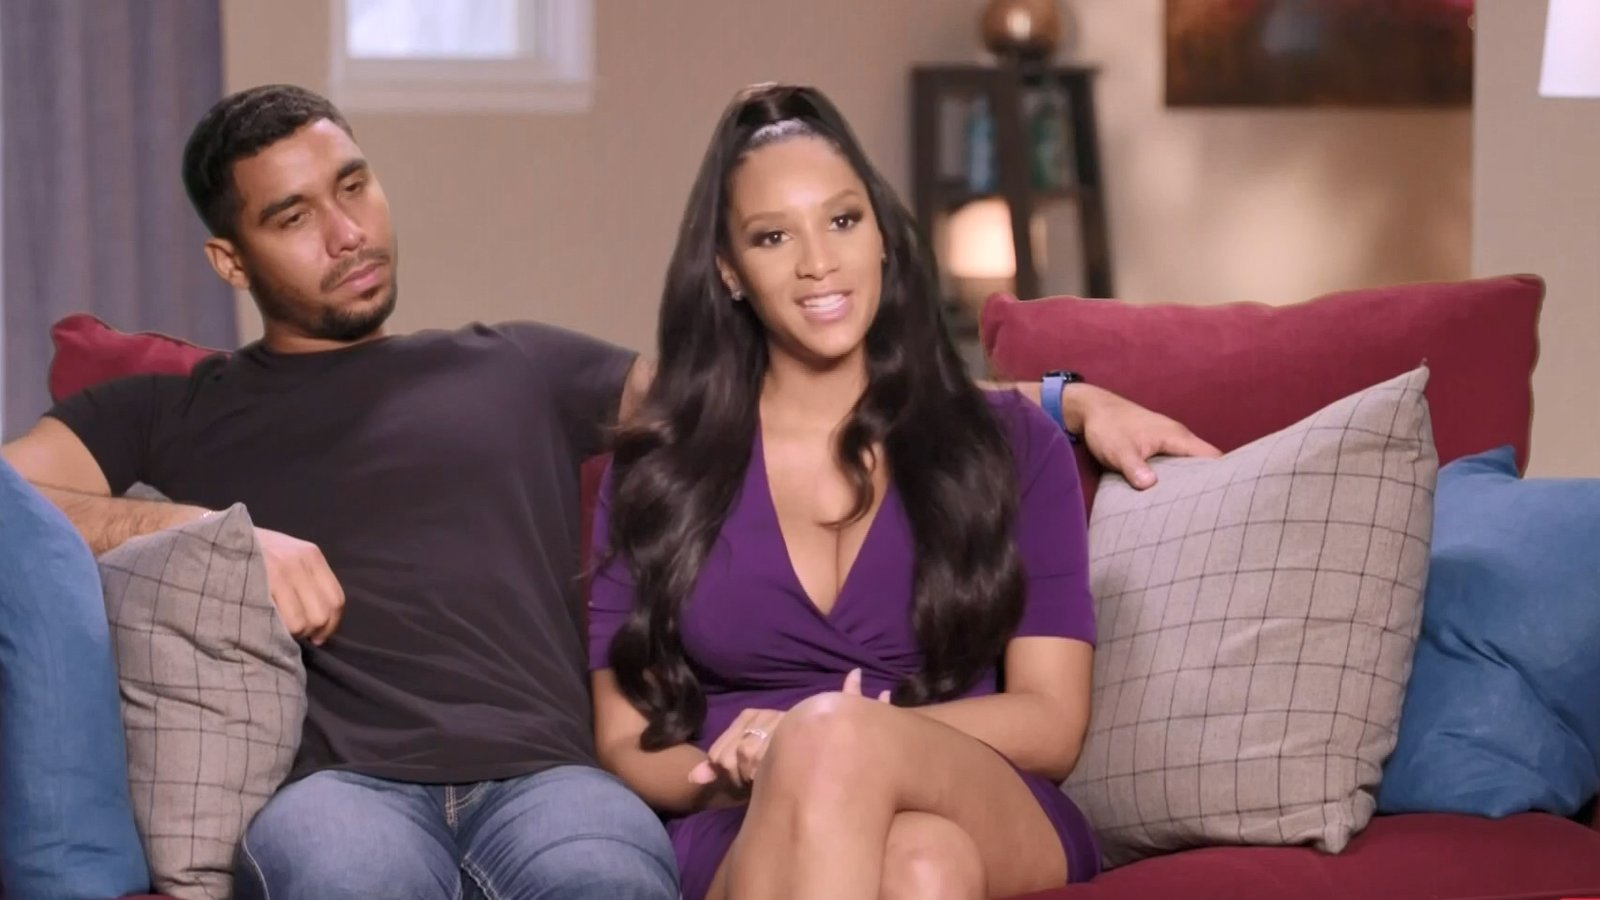 'The Family Chantel' spoilers: Have Chantel and Pedro split up or are they still together since 'The Family Chantel' Season 2? (SPOILERS)